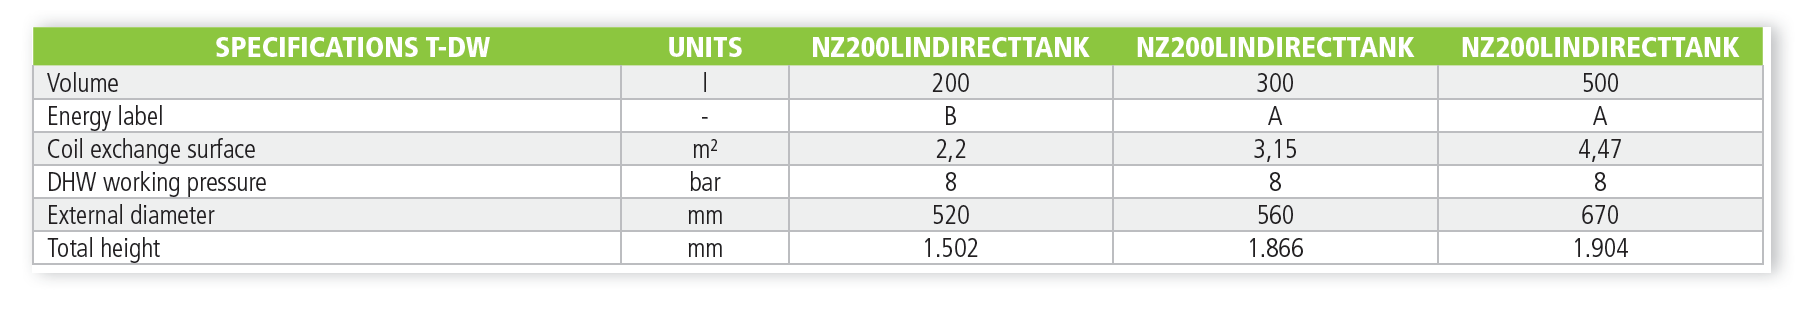 NetZero Indirect Tank Specs